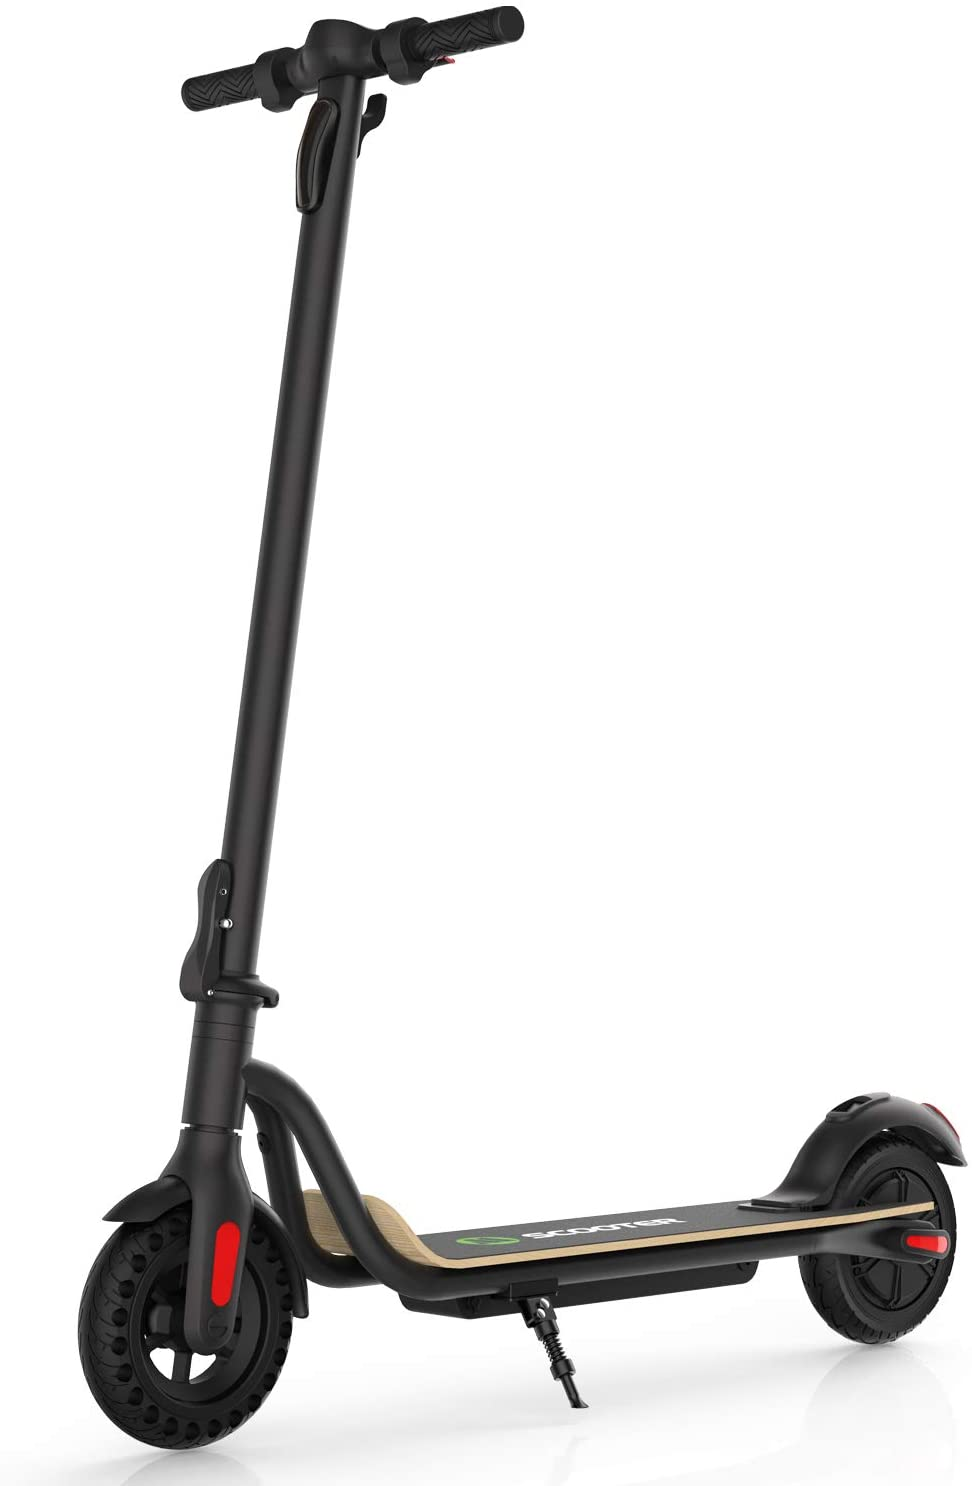 Top 10 Best Electric Scooters Under 300 [Buying Guide Reviews - 2021] 4